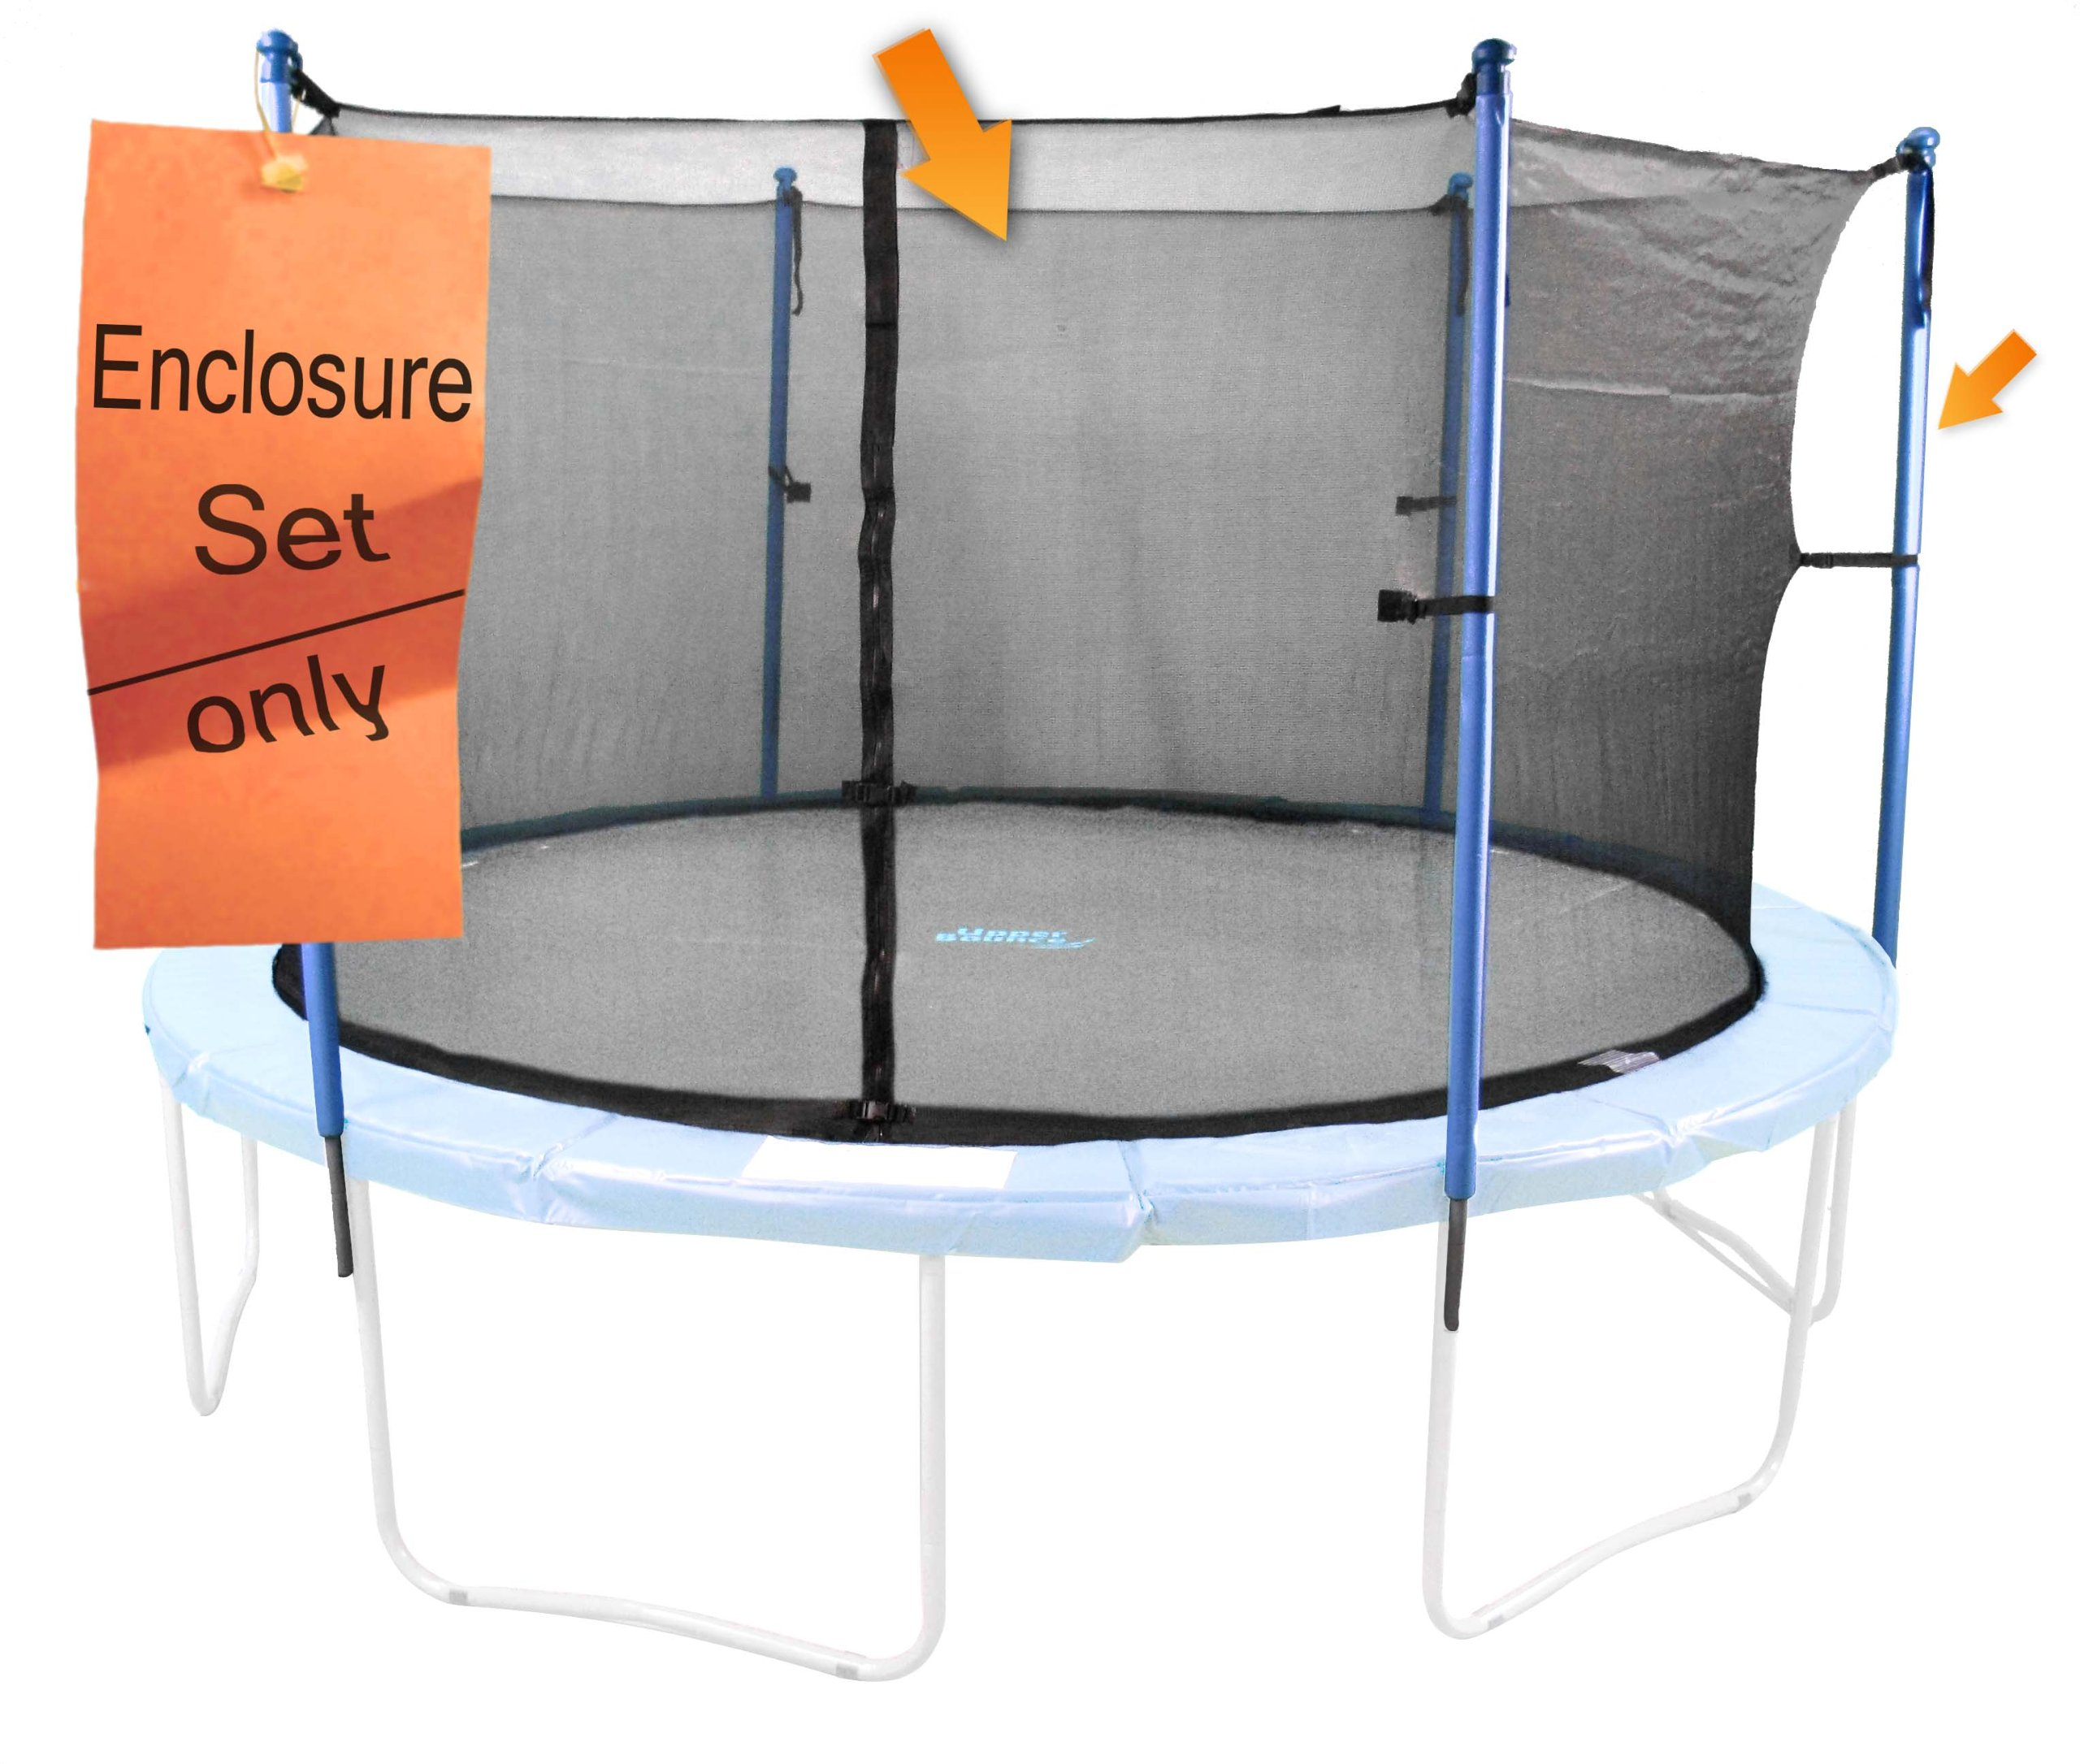 Trampoline Enclosure Set, Fits 16 FT. Round Frames, for 3 or 6 W-Shaped Legs -Set Includes: Net, Poles & Hardware Only by Upper Bounce